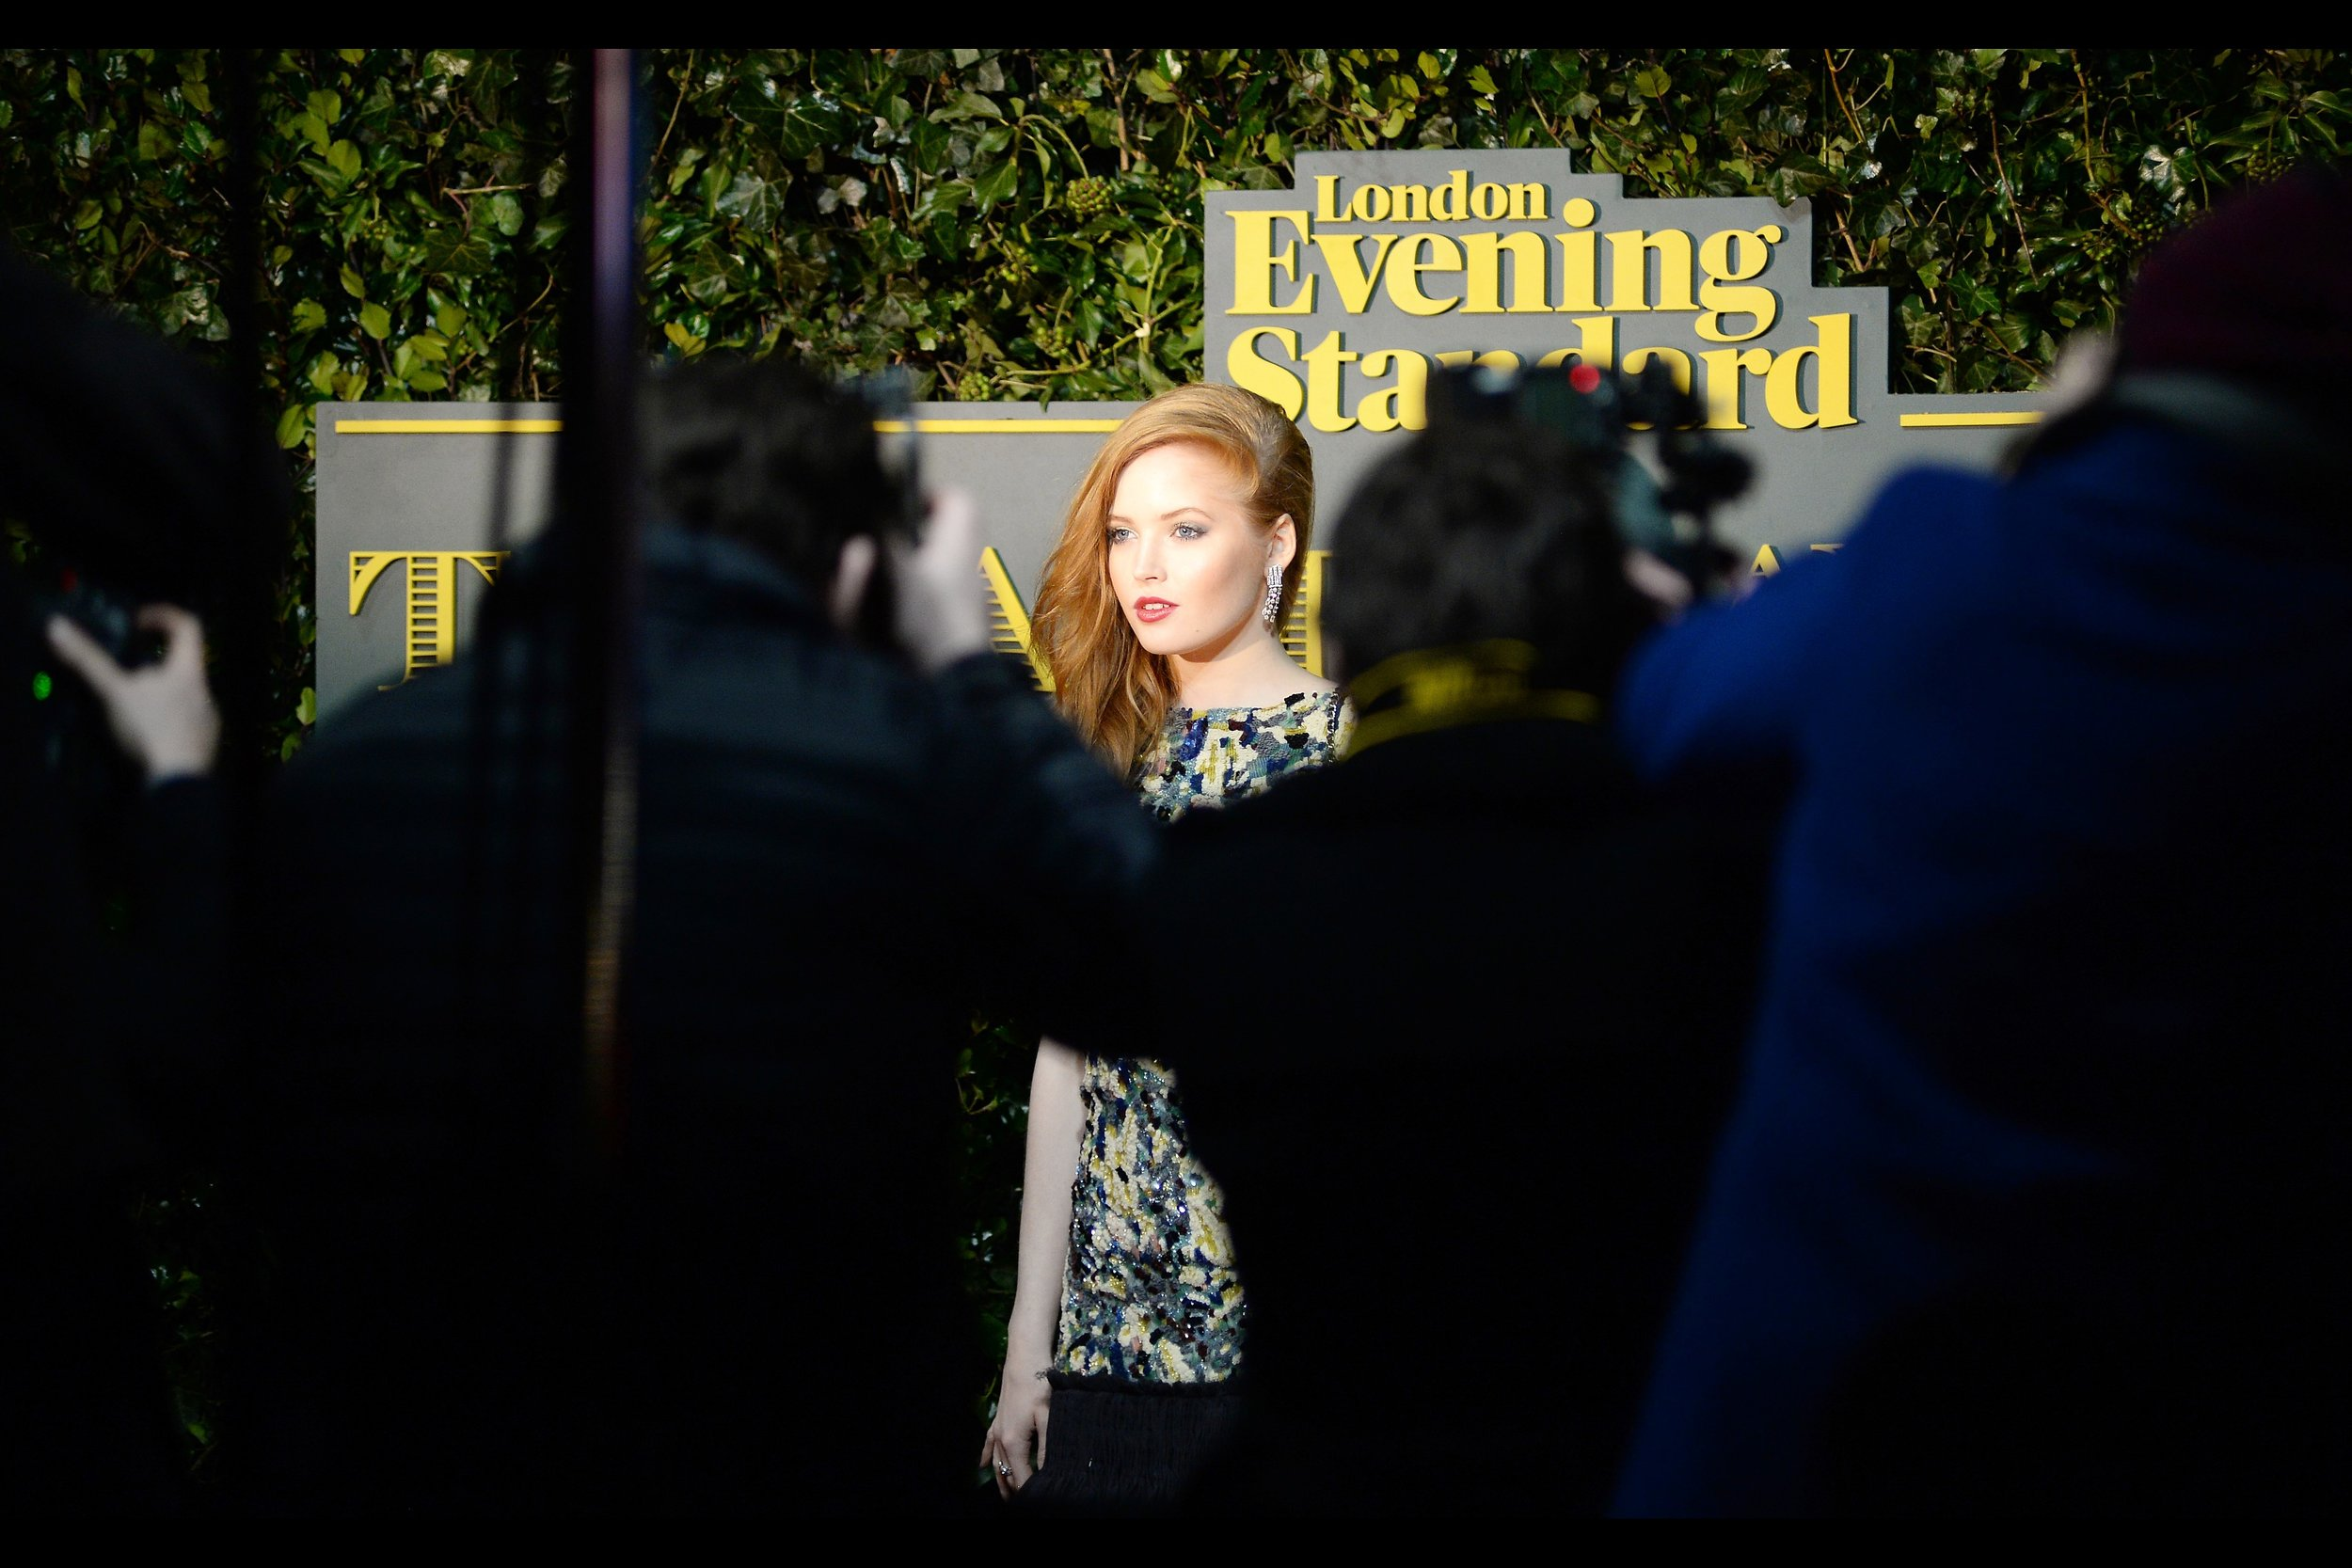 It's photos like this - of actress Ellie Bamber - that make me wonder whether I've chosen my spot at this event wisely or poorly. Might be time to think about shifting one or two people too late.